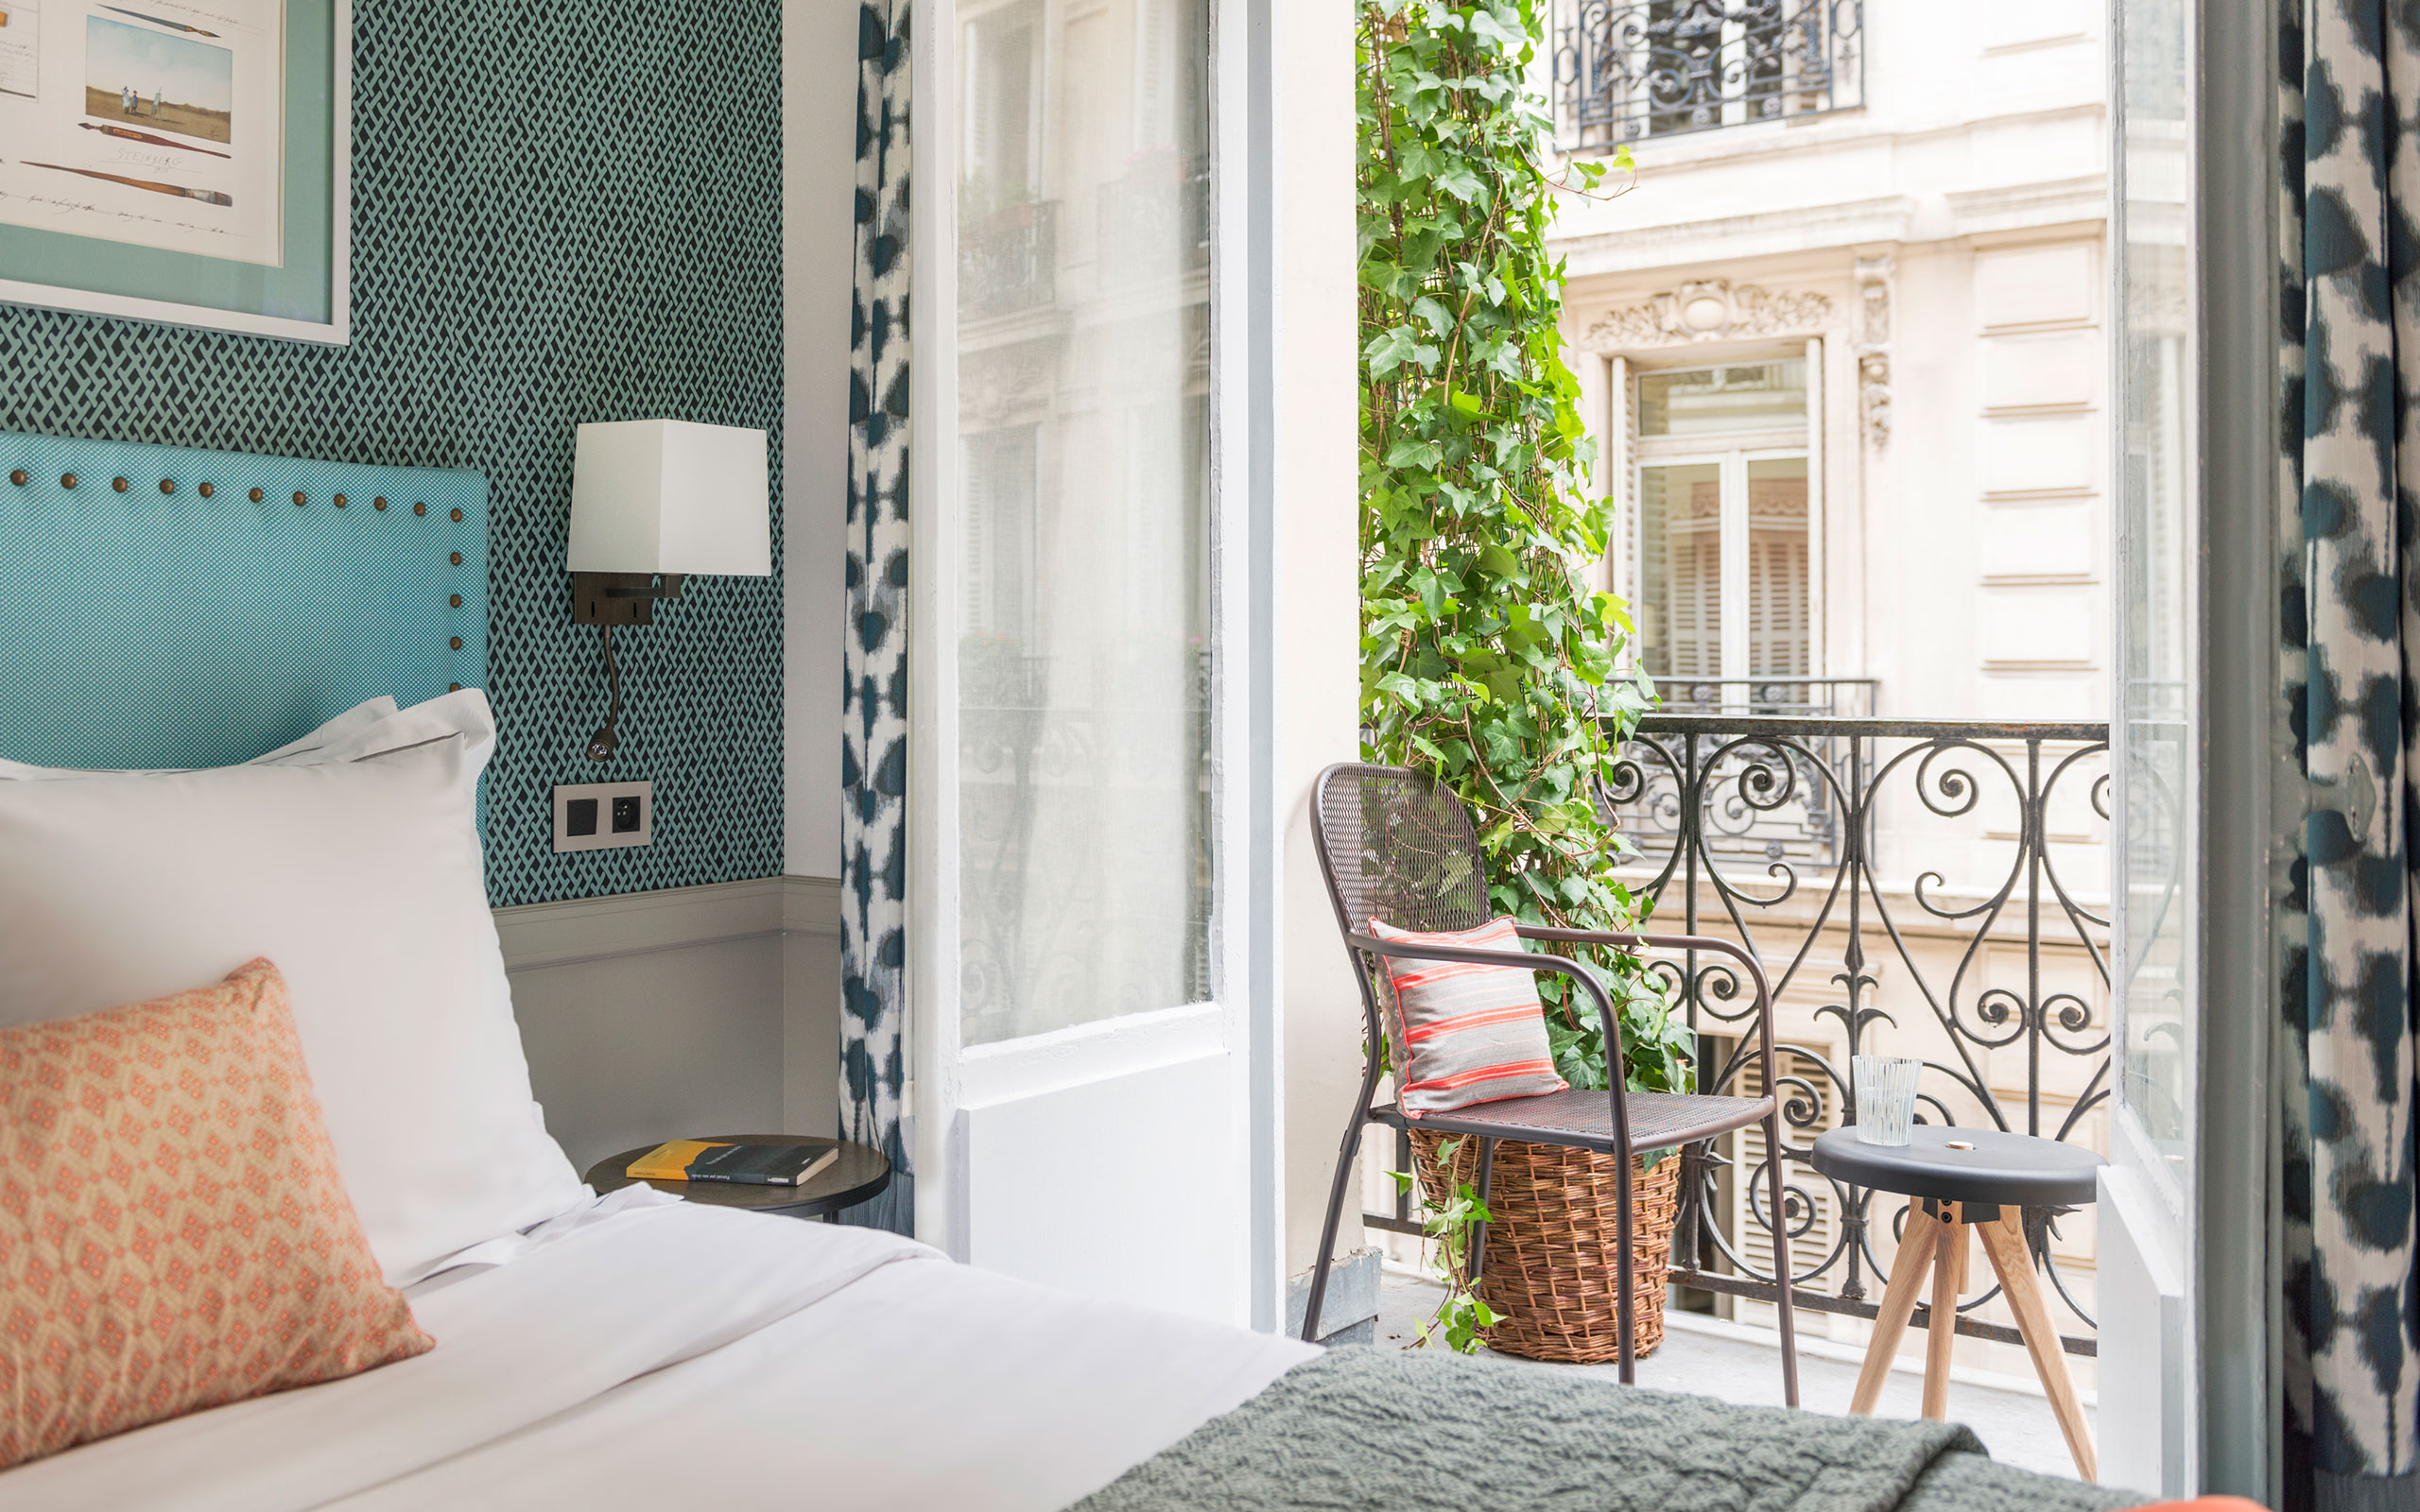 Travel guide: Paris's Must-stay Hotels